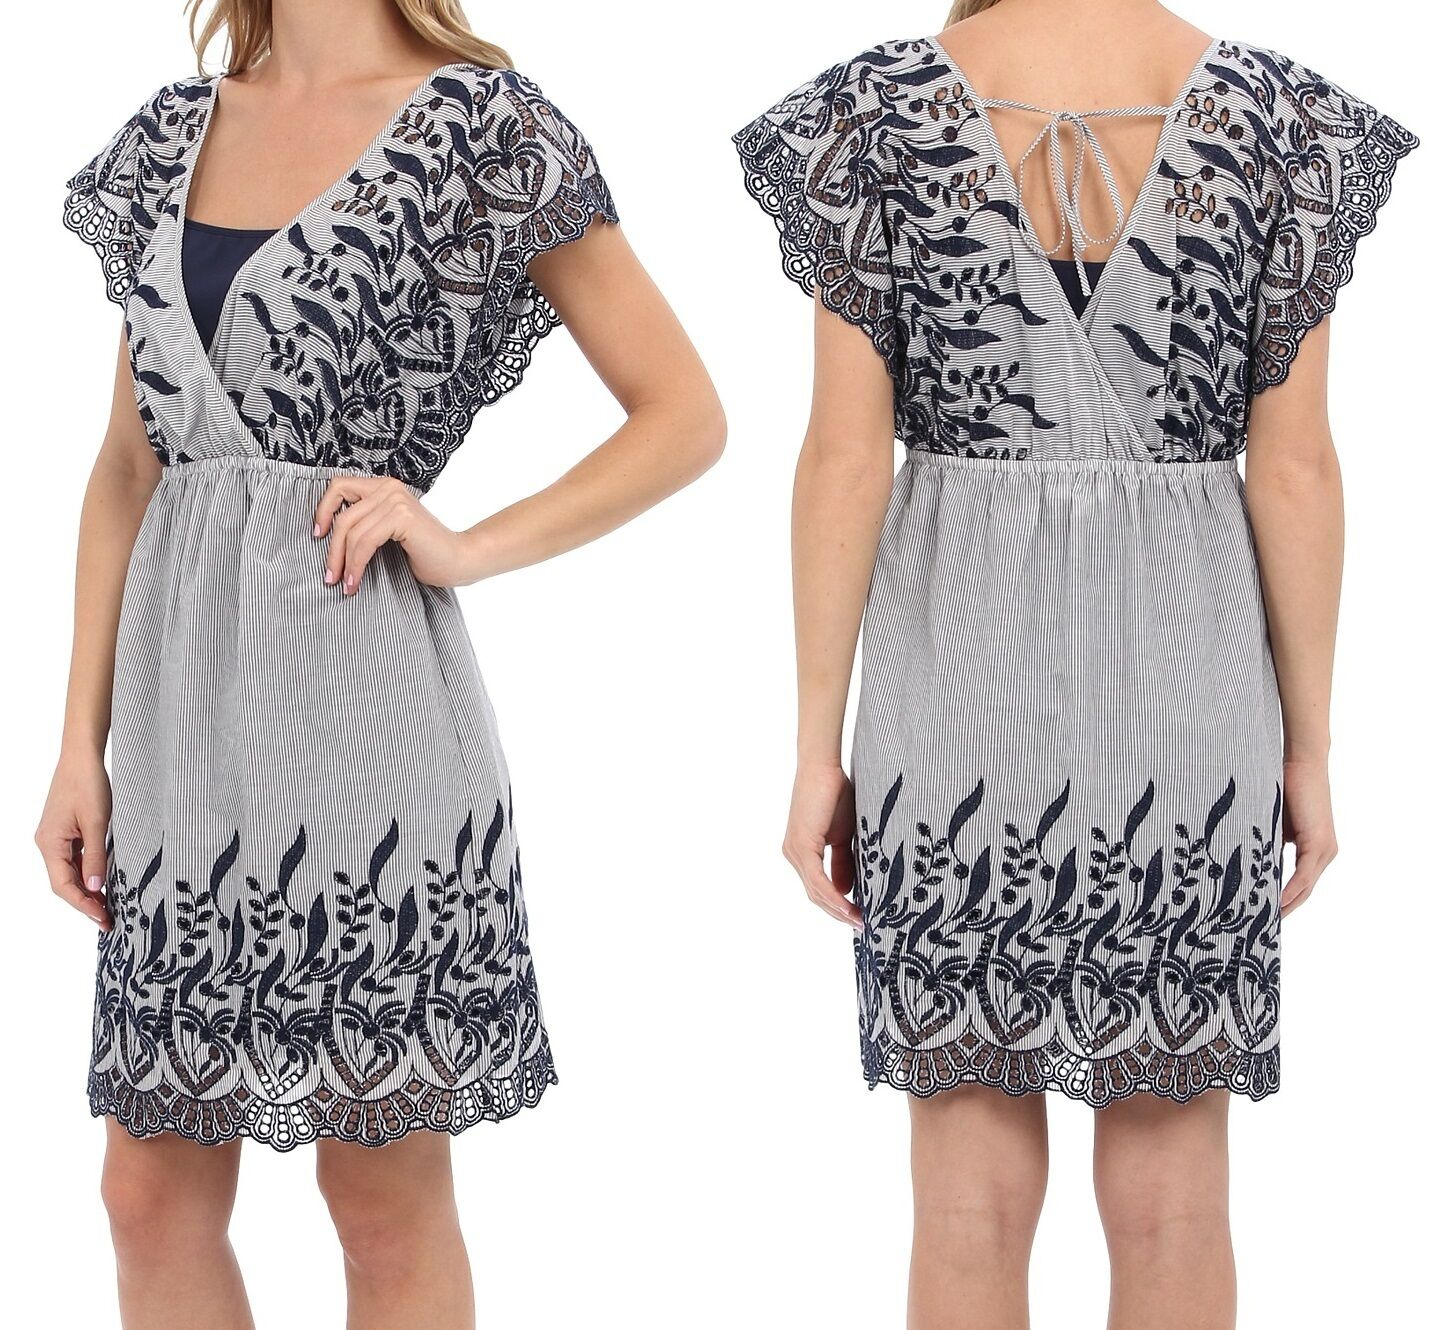 Vince Camuto bluee Night Cotton Striped Crochet Embroidered Dress - MSRP